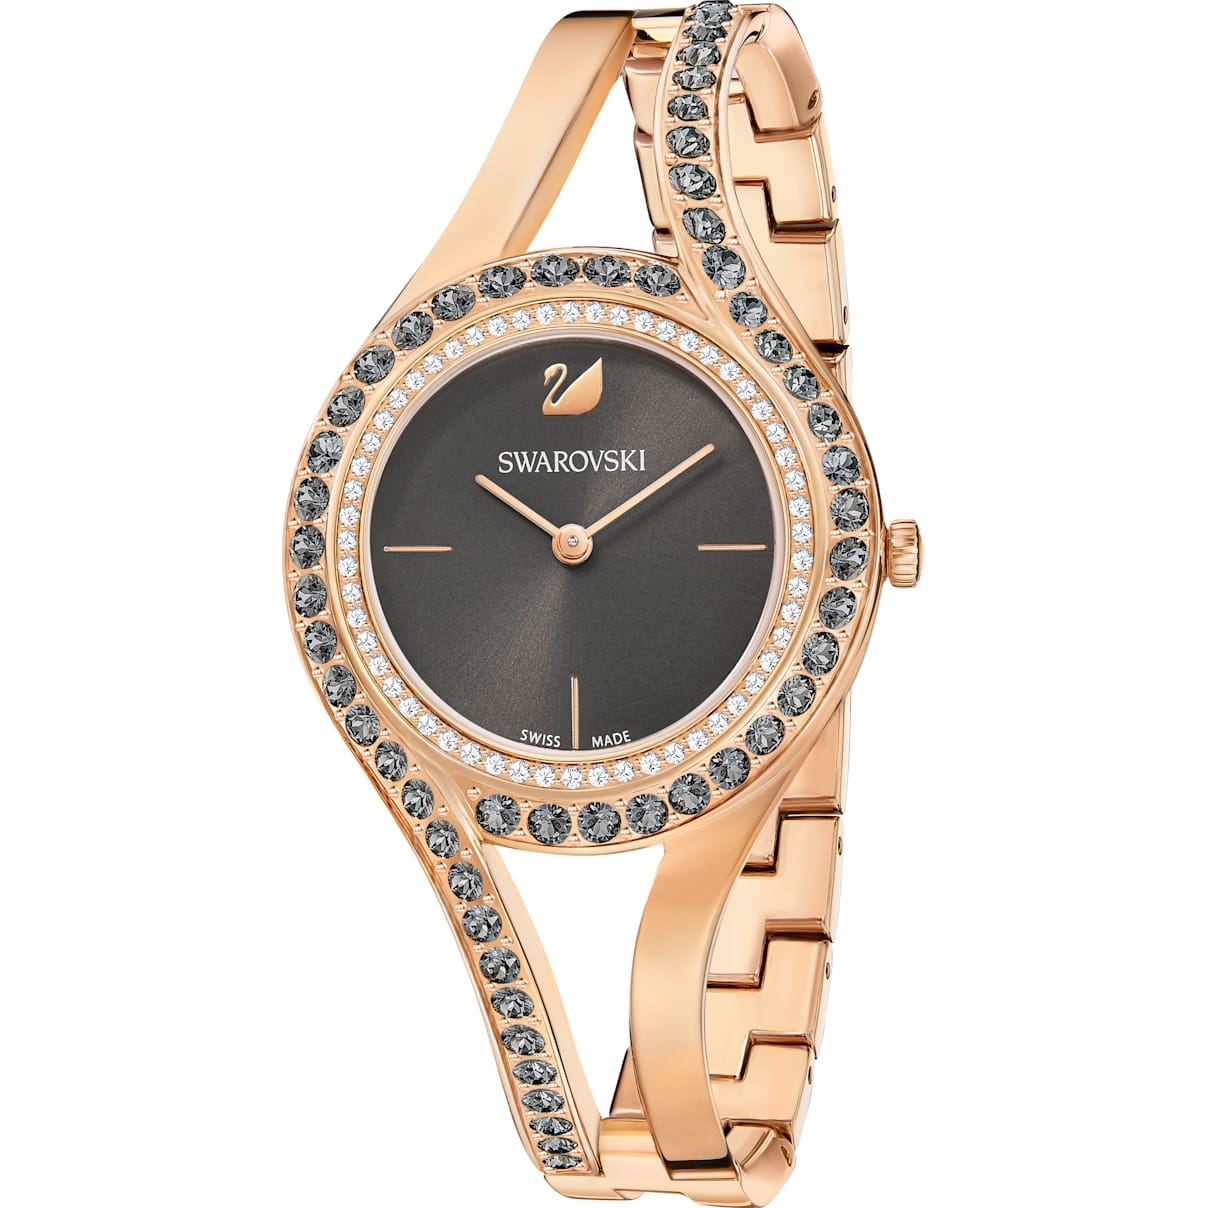 Swarovski Eternal Watch, Metal bracelet, Dark gray, Rose-gold tone PVD